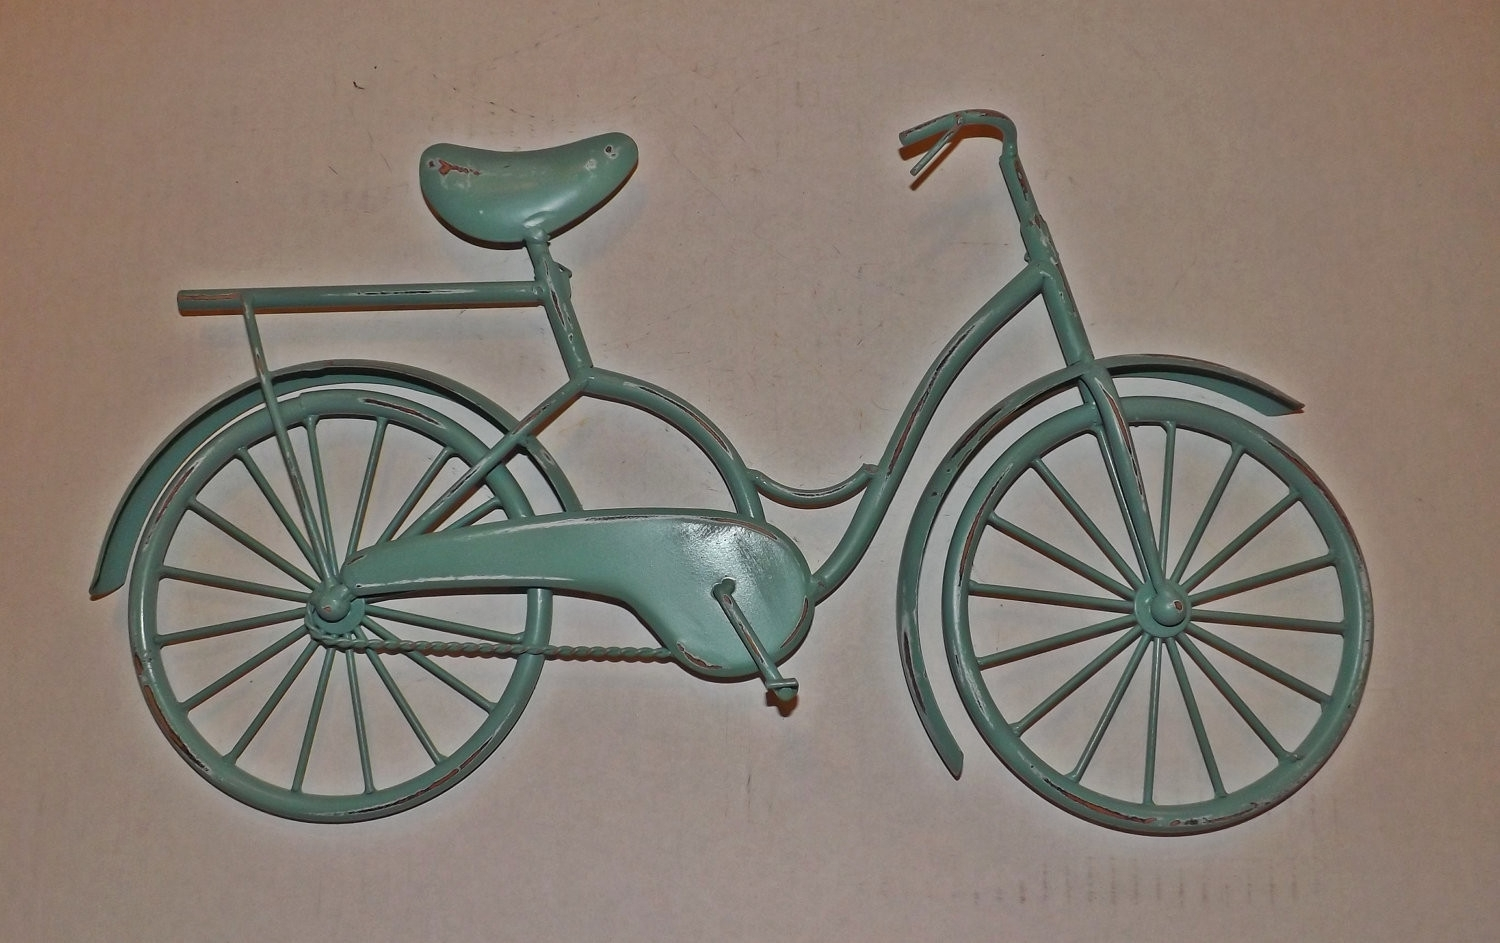 29 Lovely Bicycle Wall Decor | Wall Decor Inspiration Regarding Bicycle Wall Art (Photo 20 of 20)